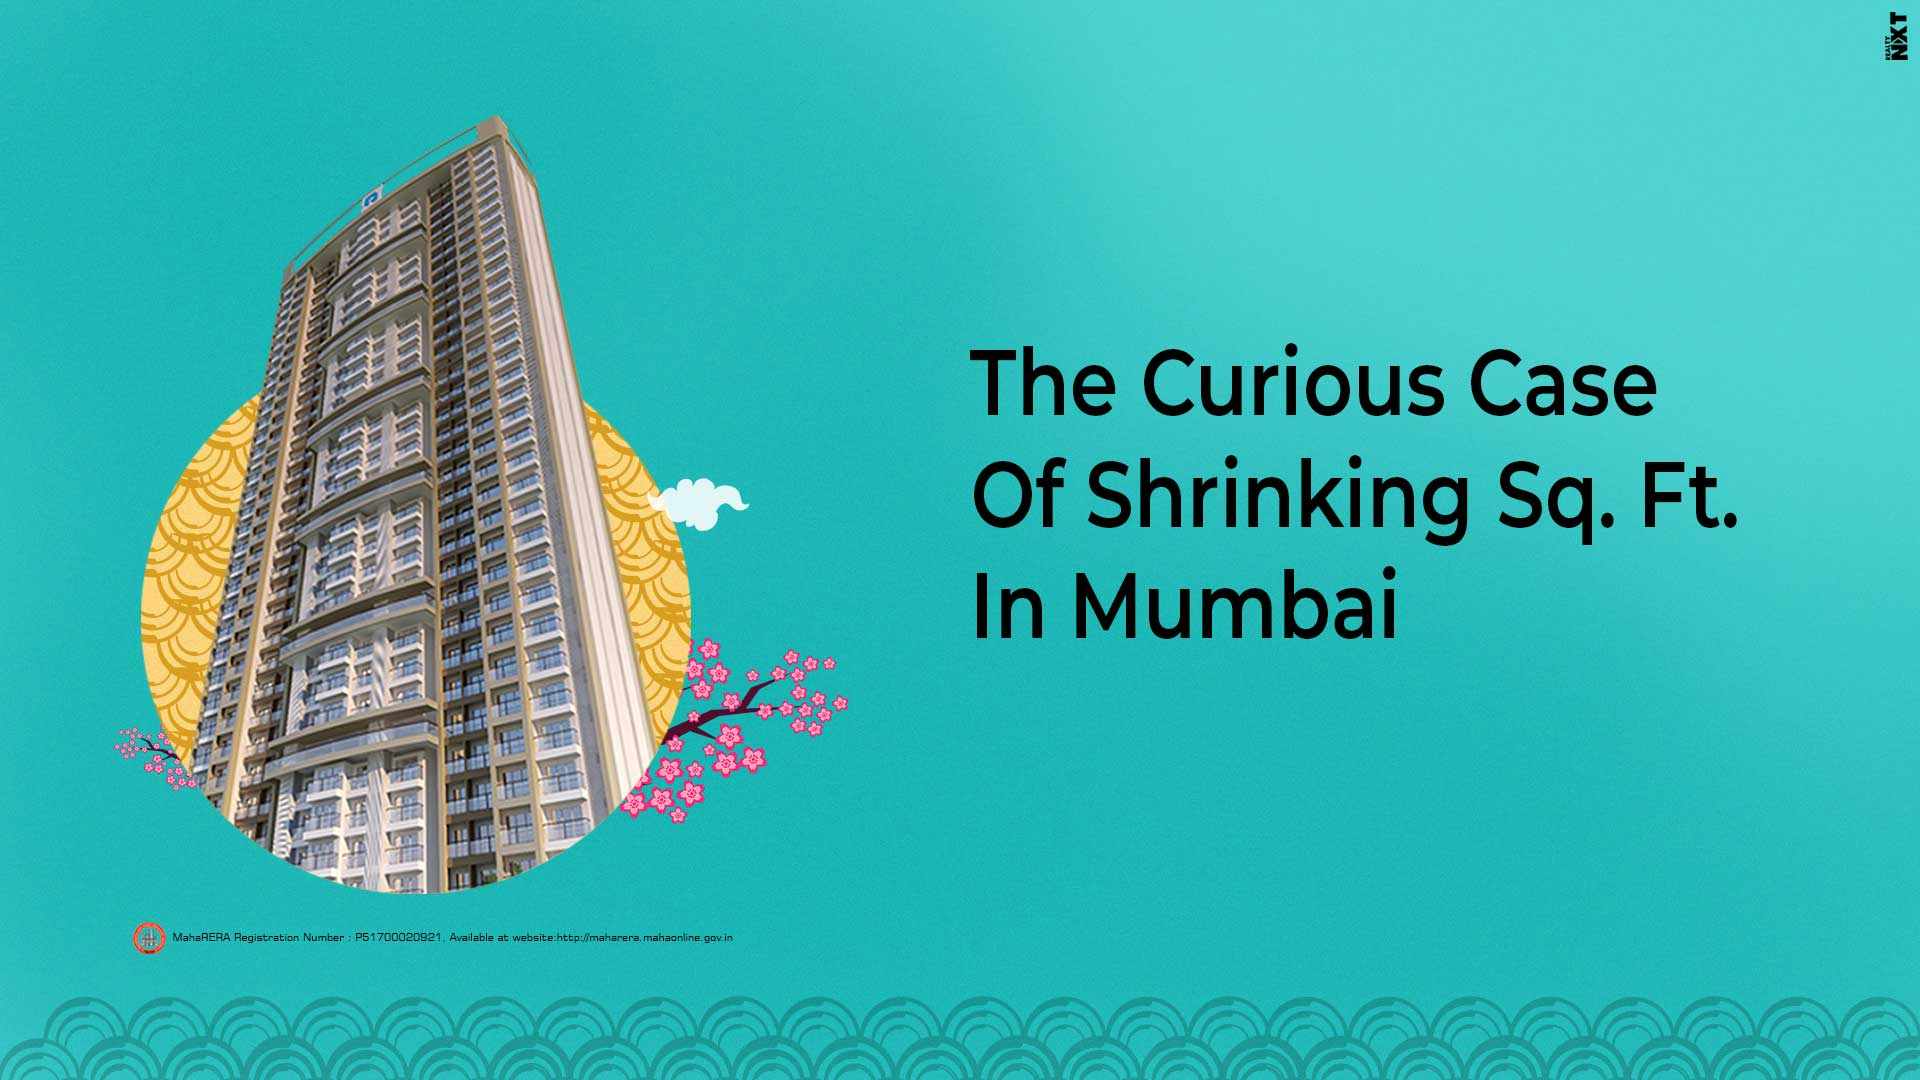 The Shrinking Sq. Ft. Phenomenon Of Mumbai's Real Estate